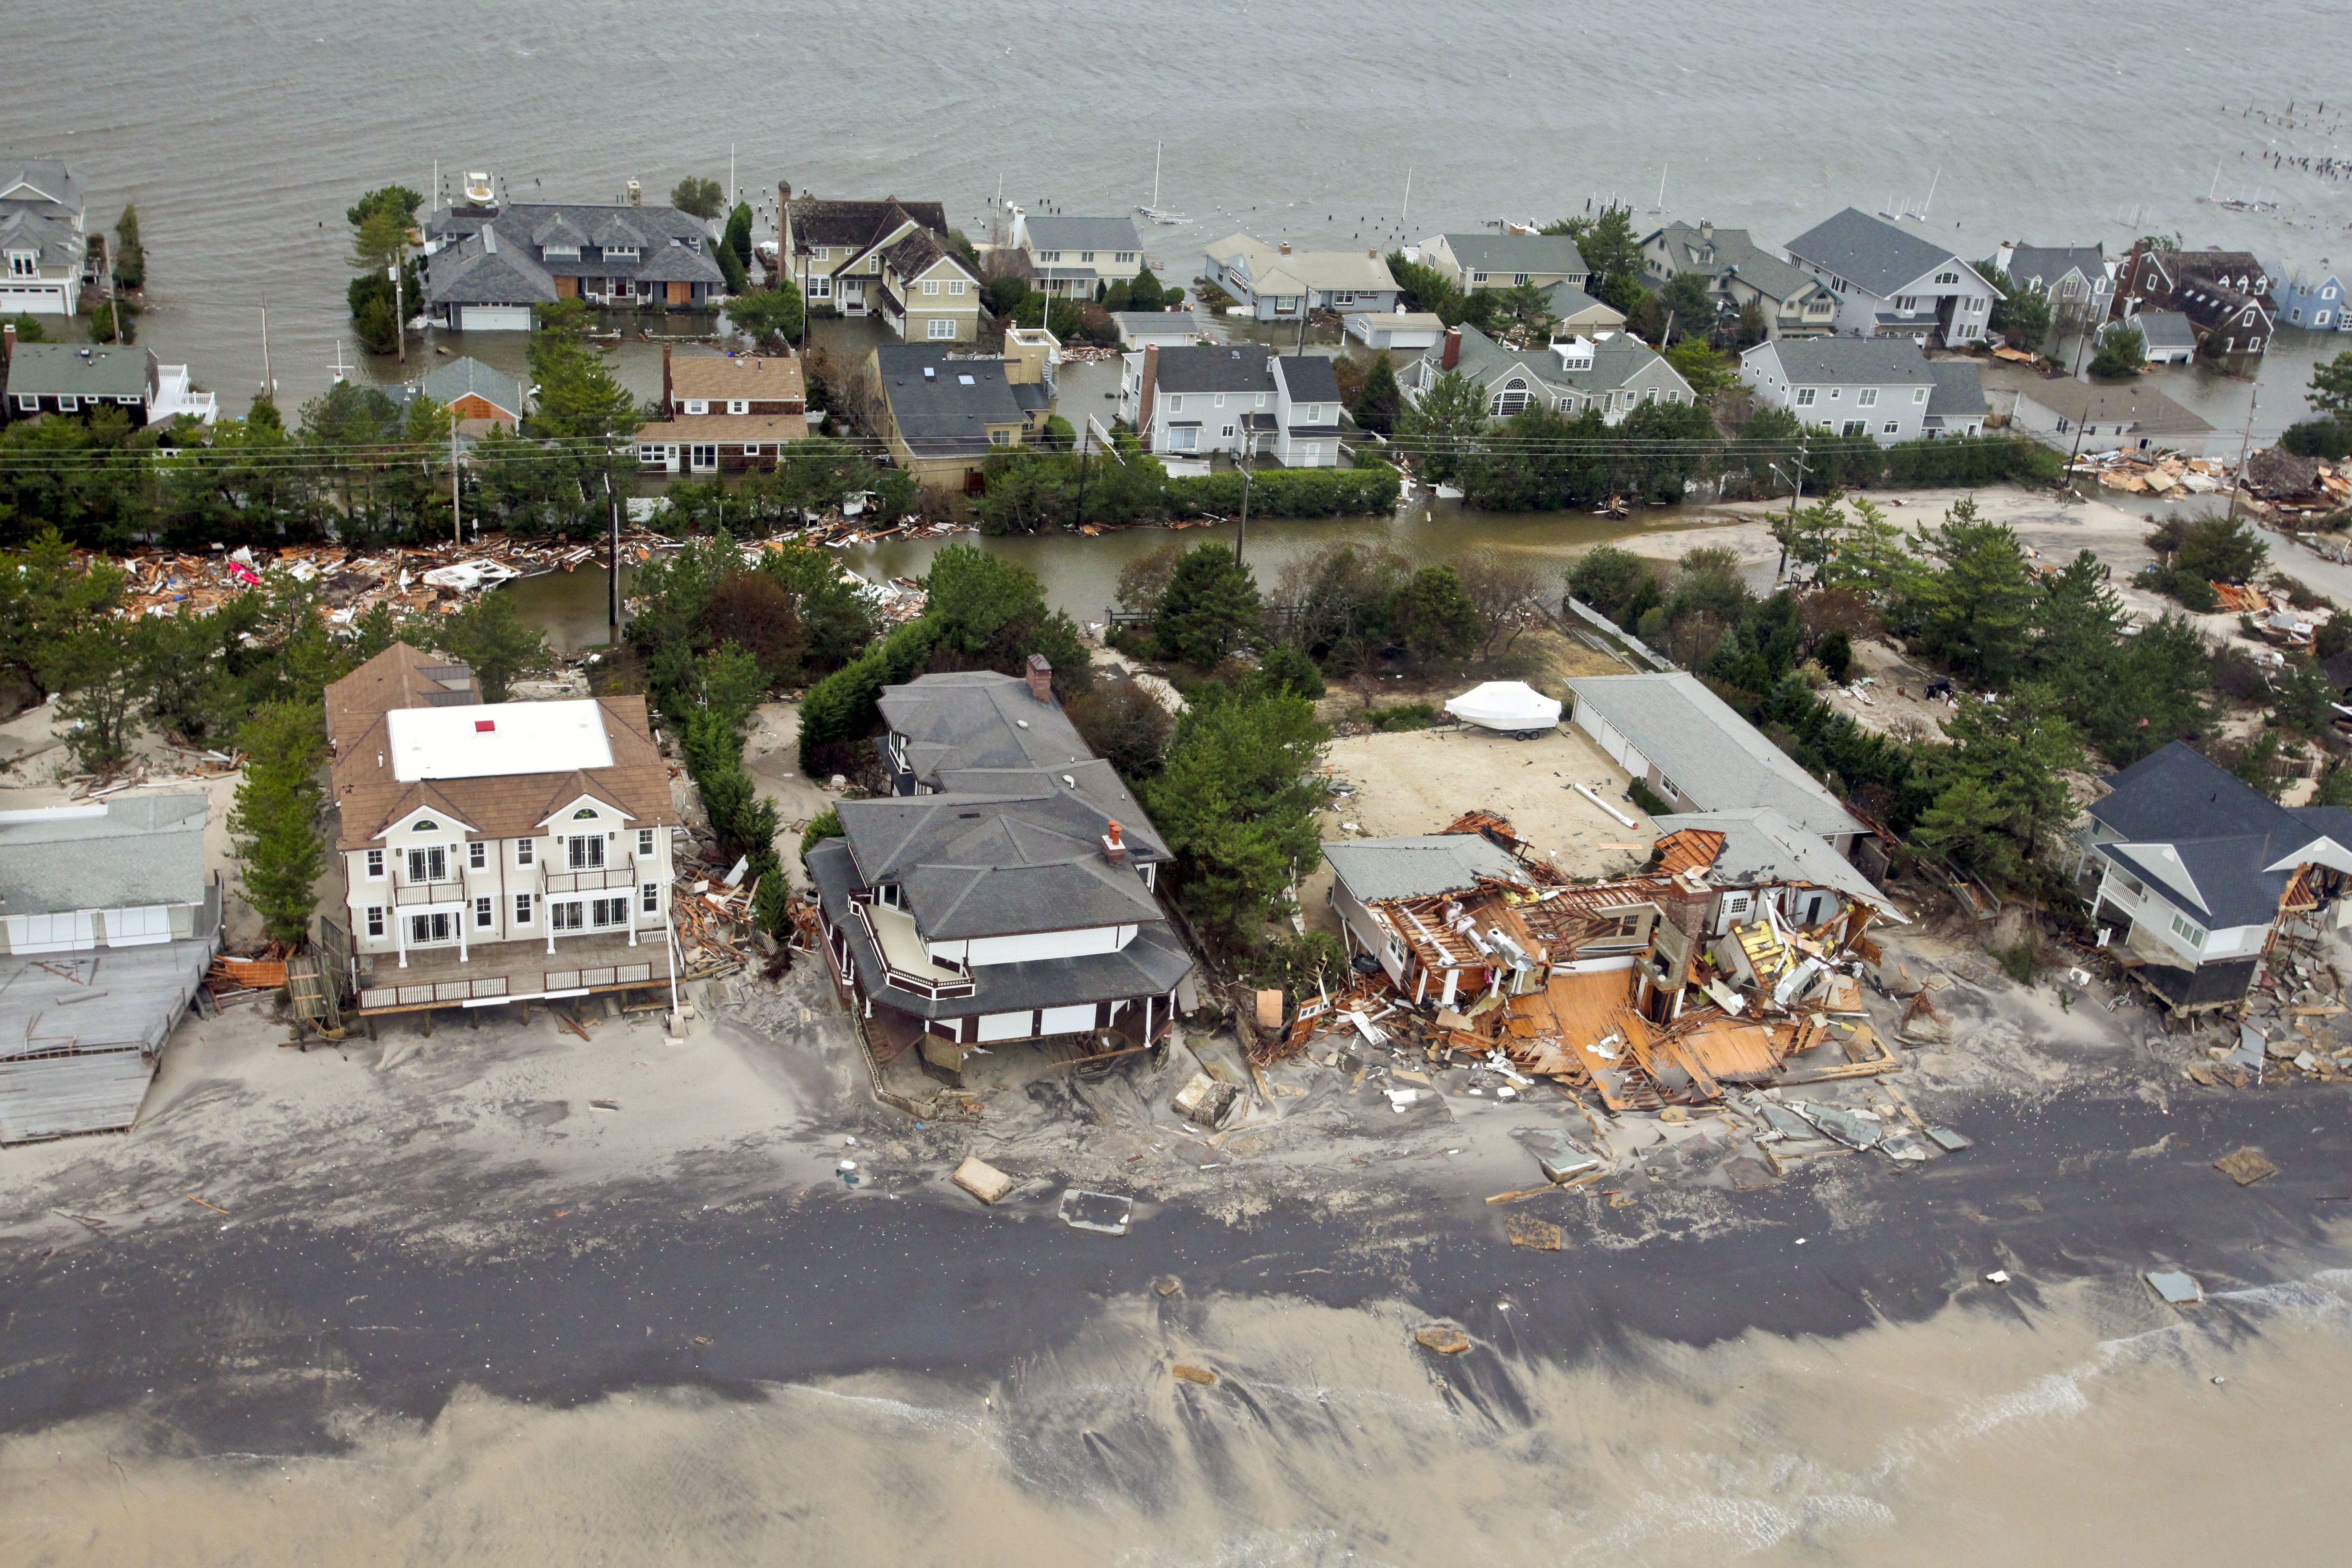 Damage Caused By Hurricane Sandy To The New Jersey Coast Credit U S Air Force Hurricane Sandy Storm Surge Sea Level Rise